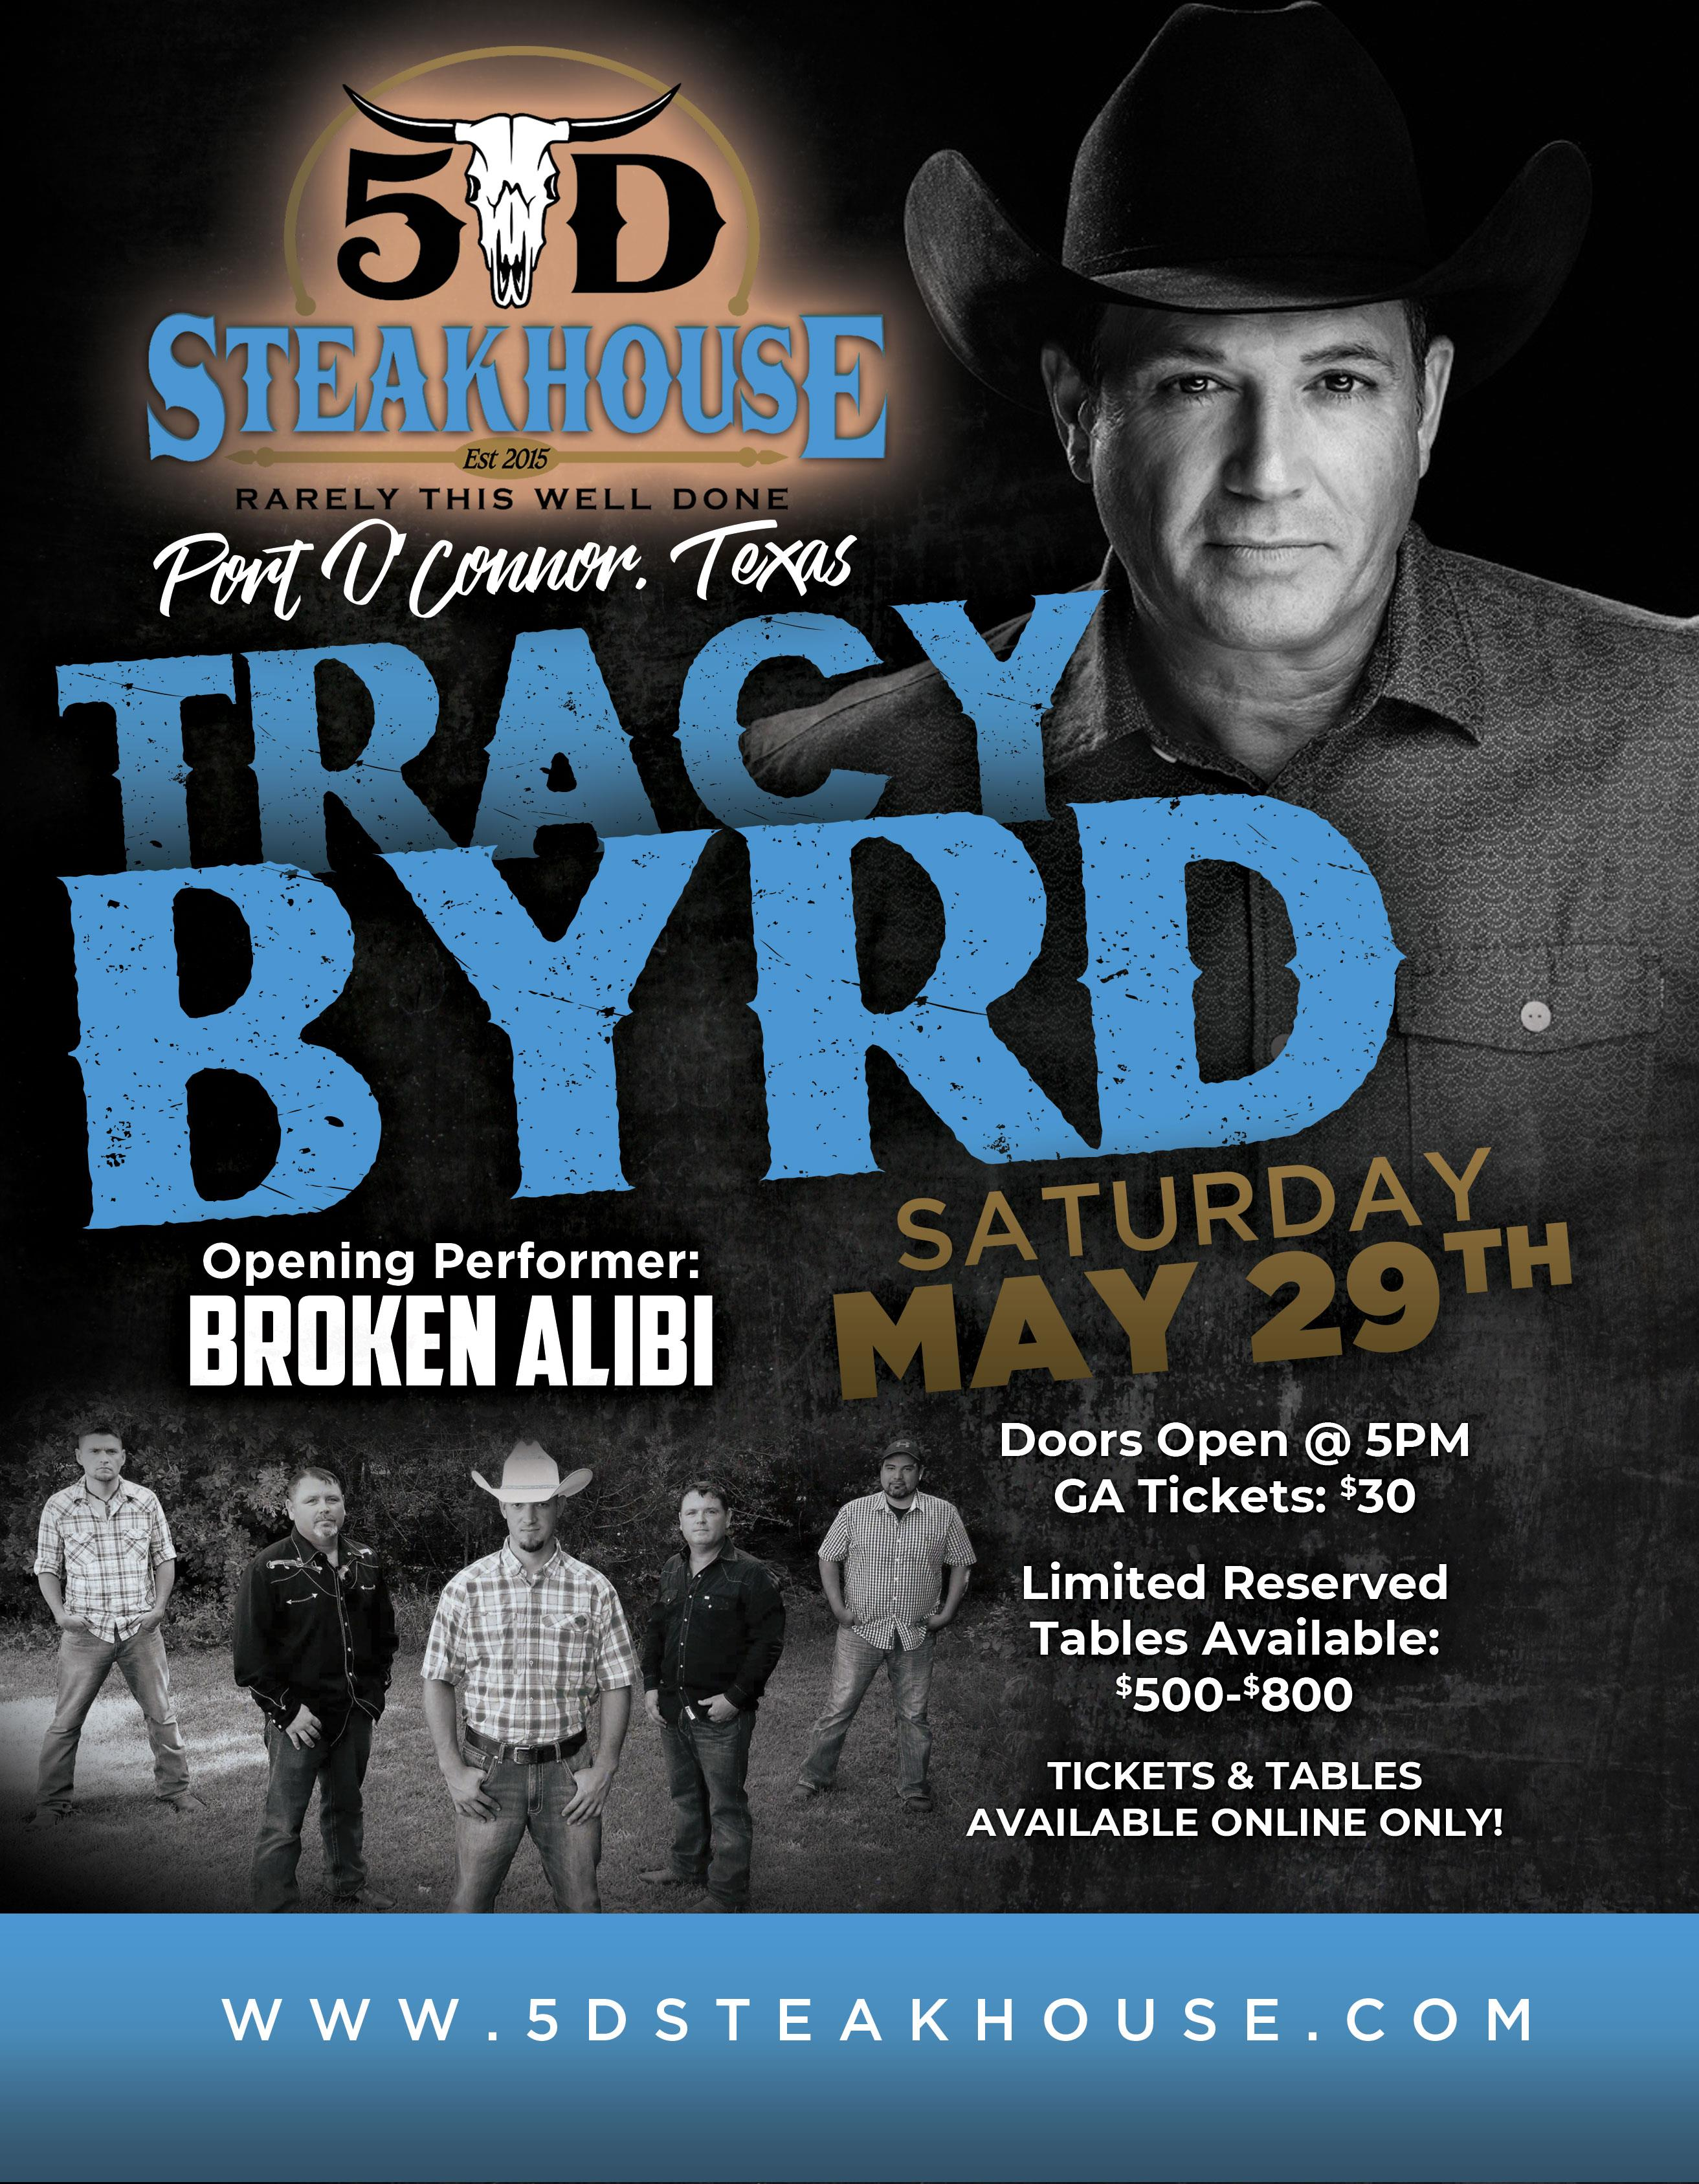 tracy byrd live event